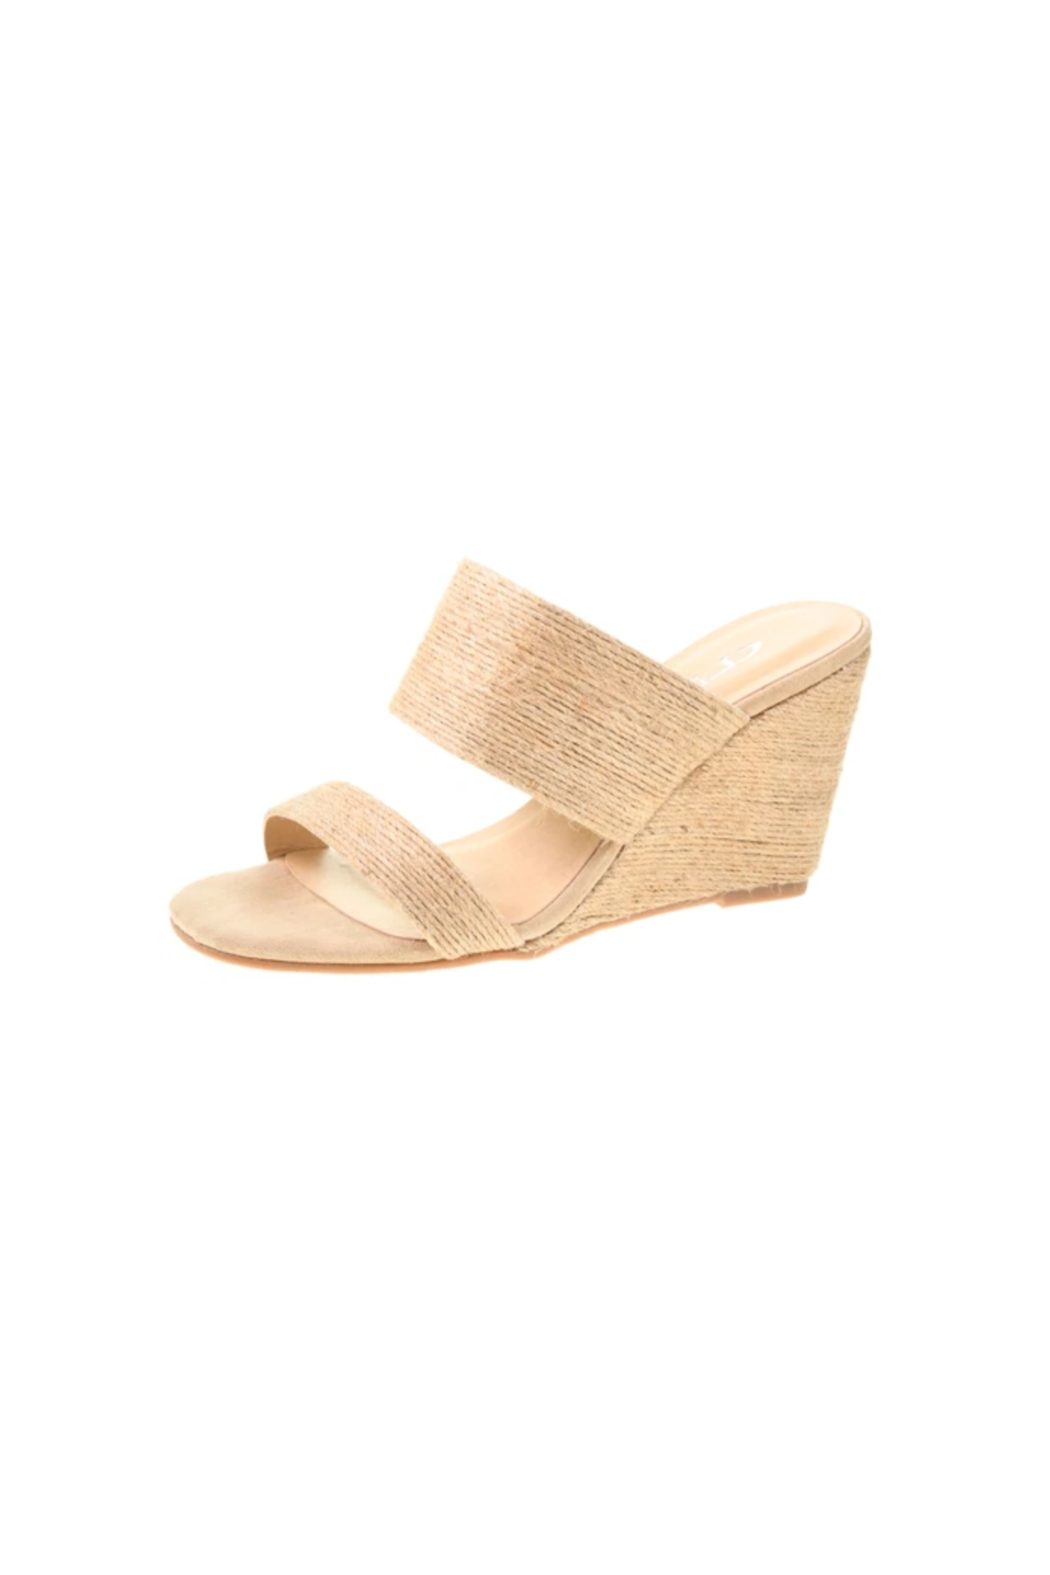 CL by Chinese Laundry Five Star Wedge - Main Image